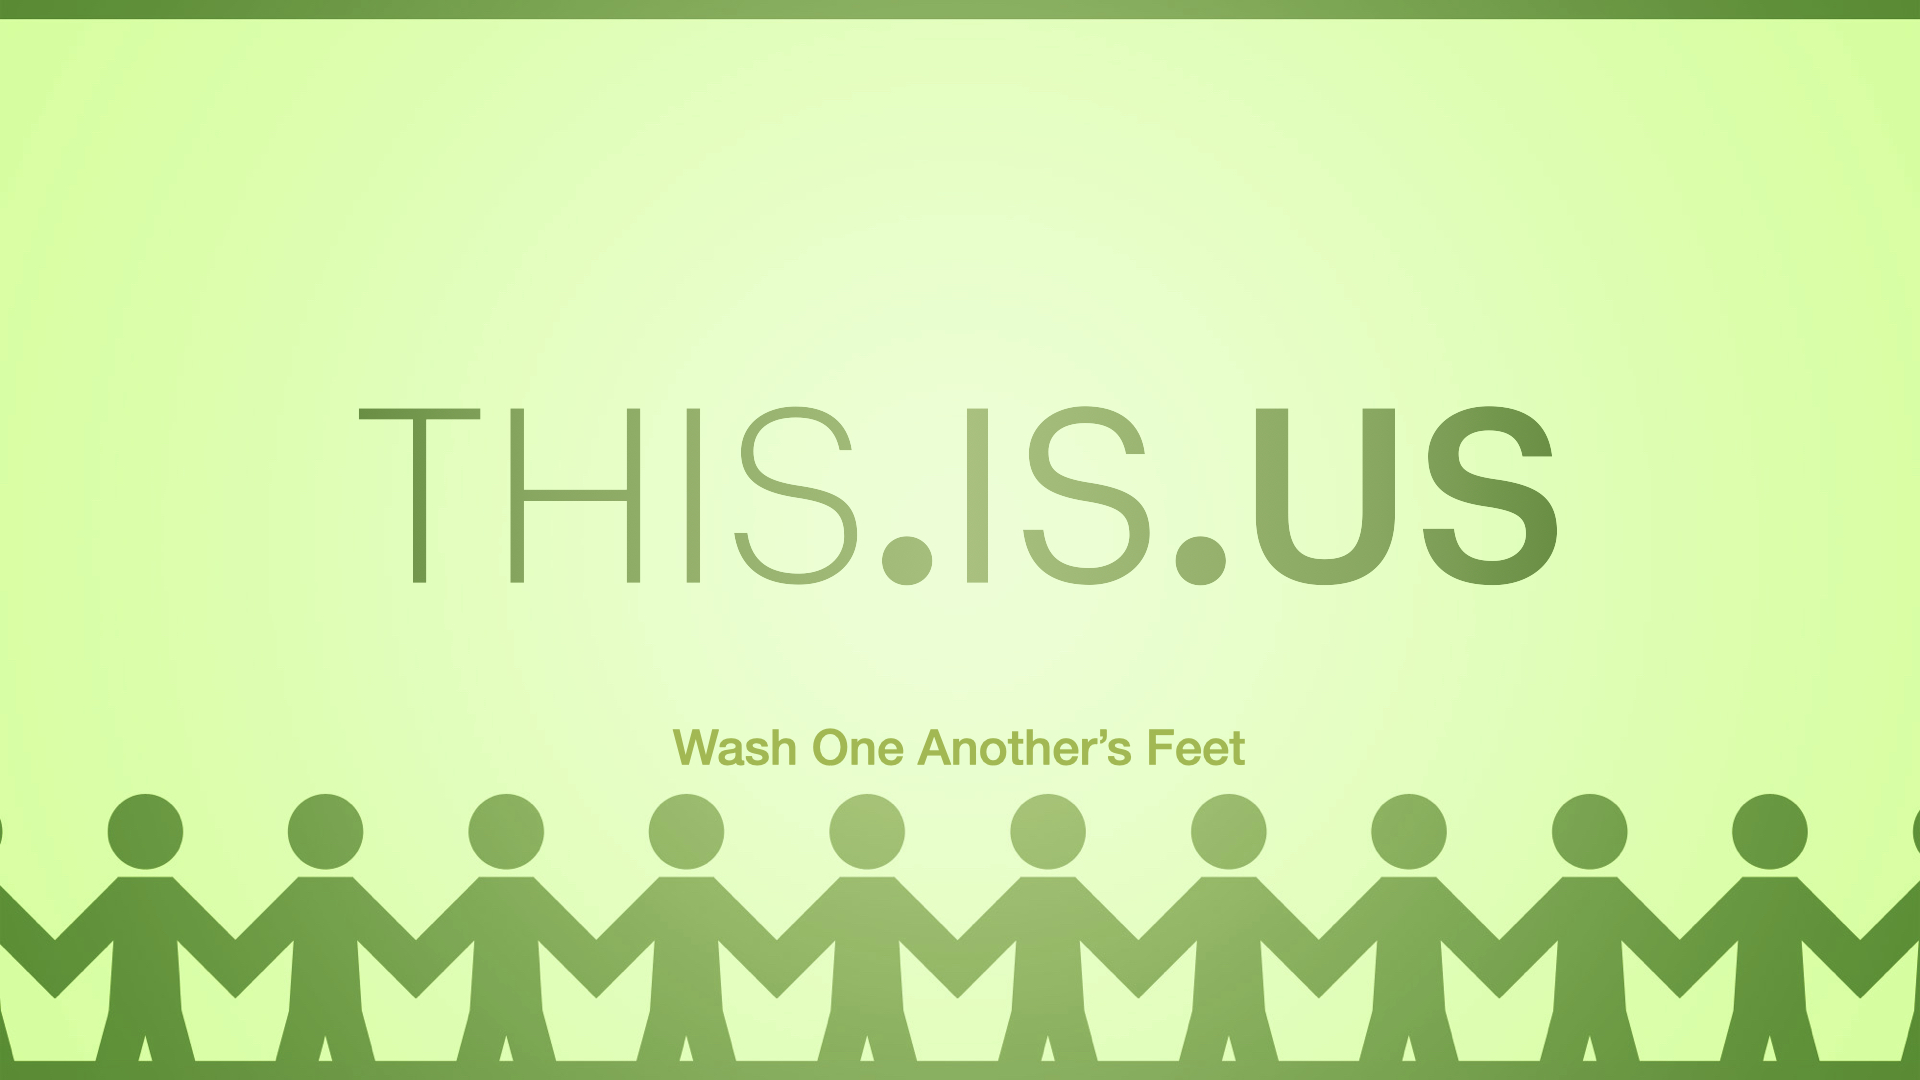 THISISUS  Wash One Anothers Feet